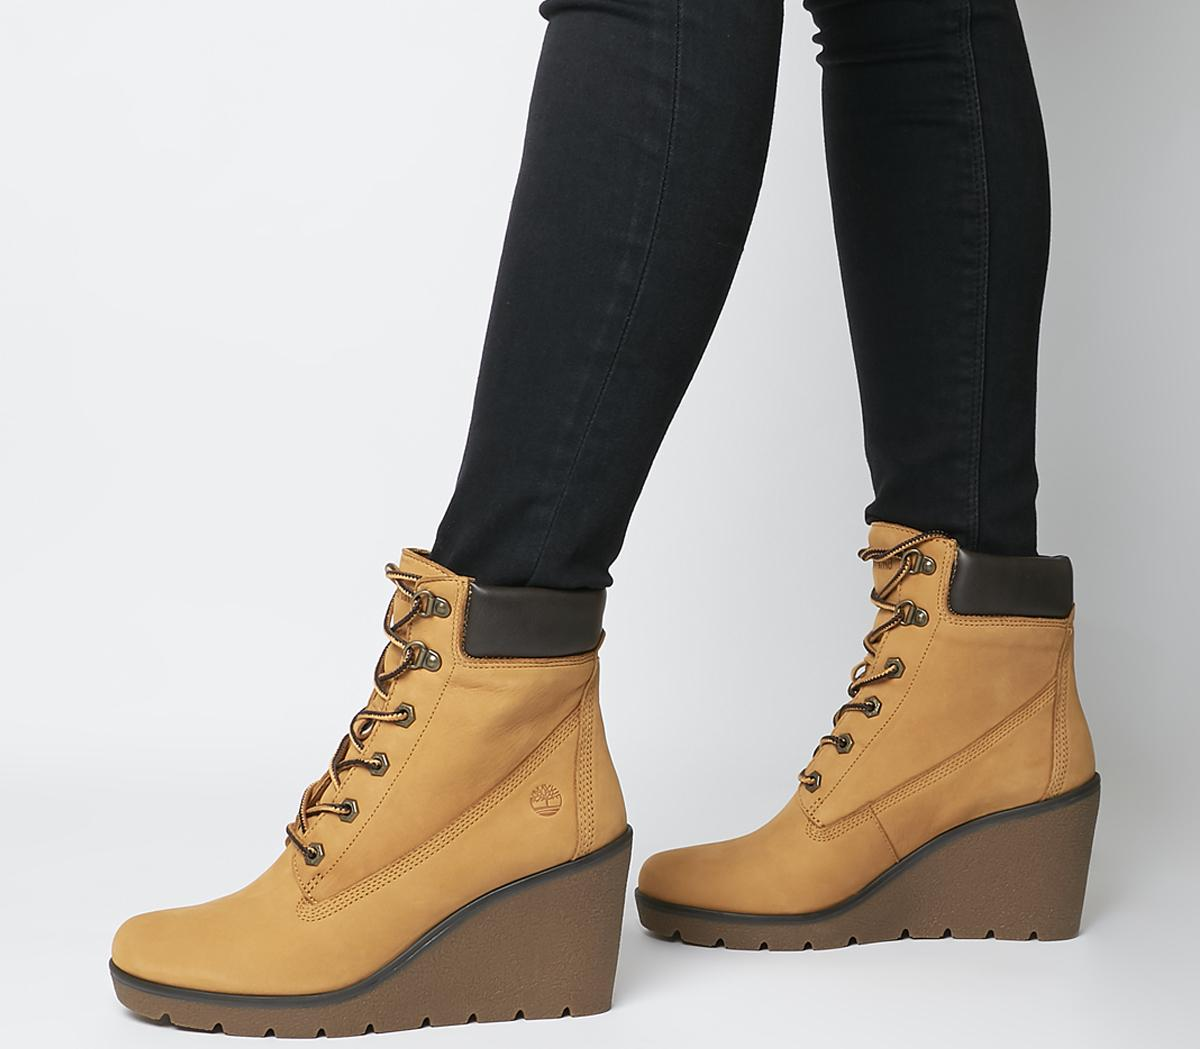 Paris Height 6 Inch Wedge Boots